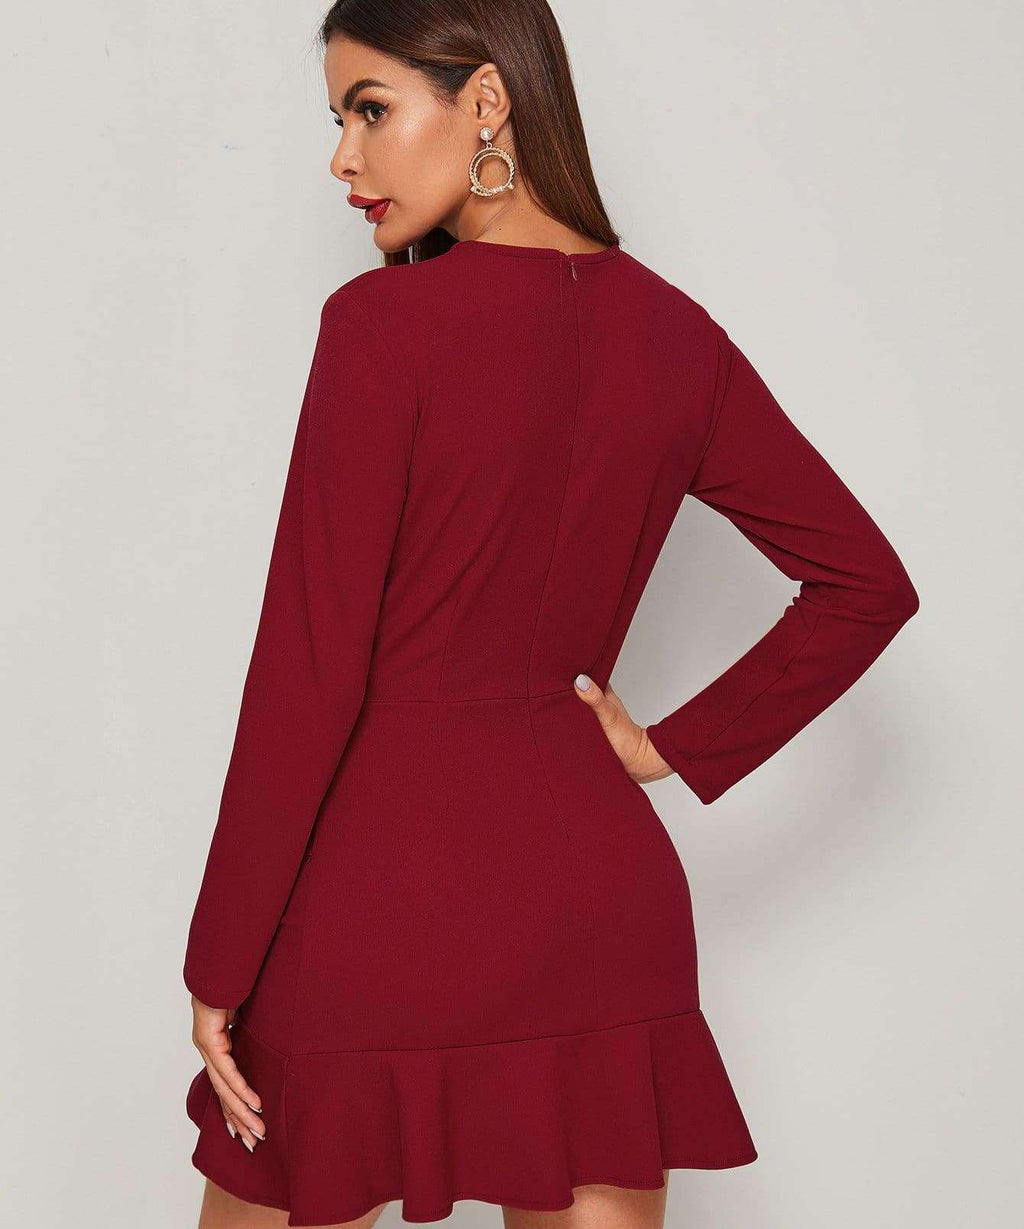 Romantic Night Long Sleeve Dress - Dresses